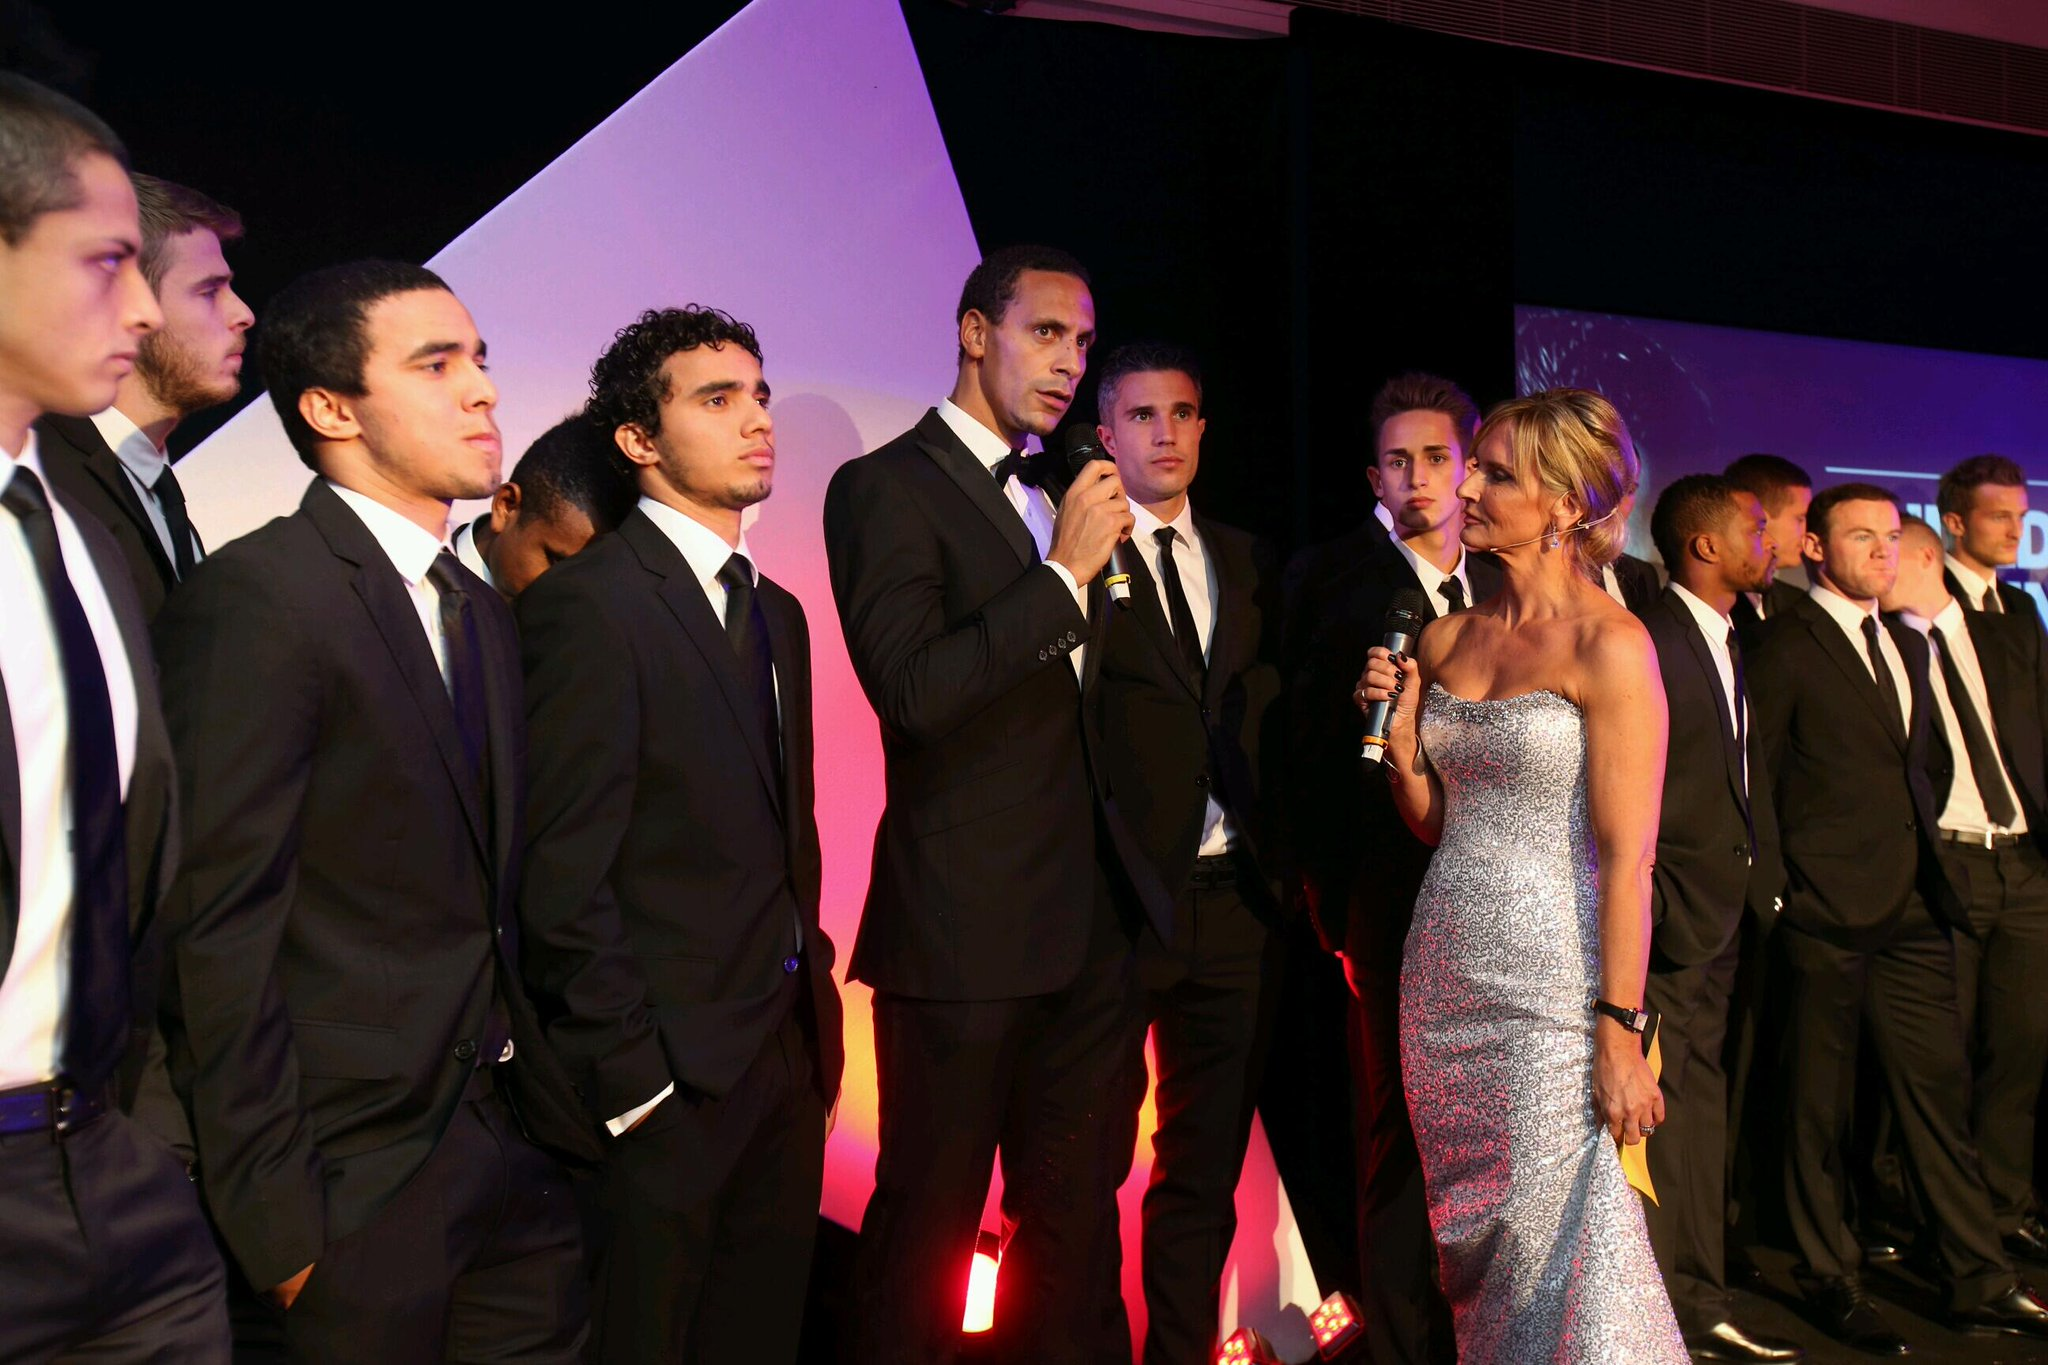 """@MU_Foundation: @rioferdy5 & the players talk to host @SkyJacquie on stage at the #UTD4UNICEF gala dinner http://t.co/wtD8L9pWBV"" RVP OMG"""